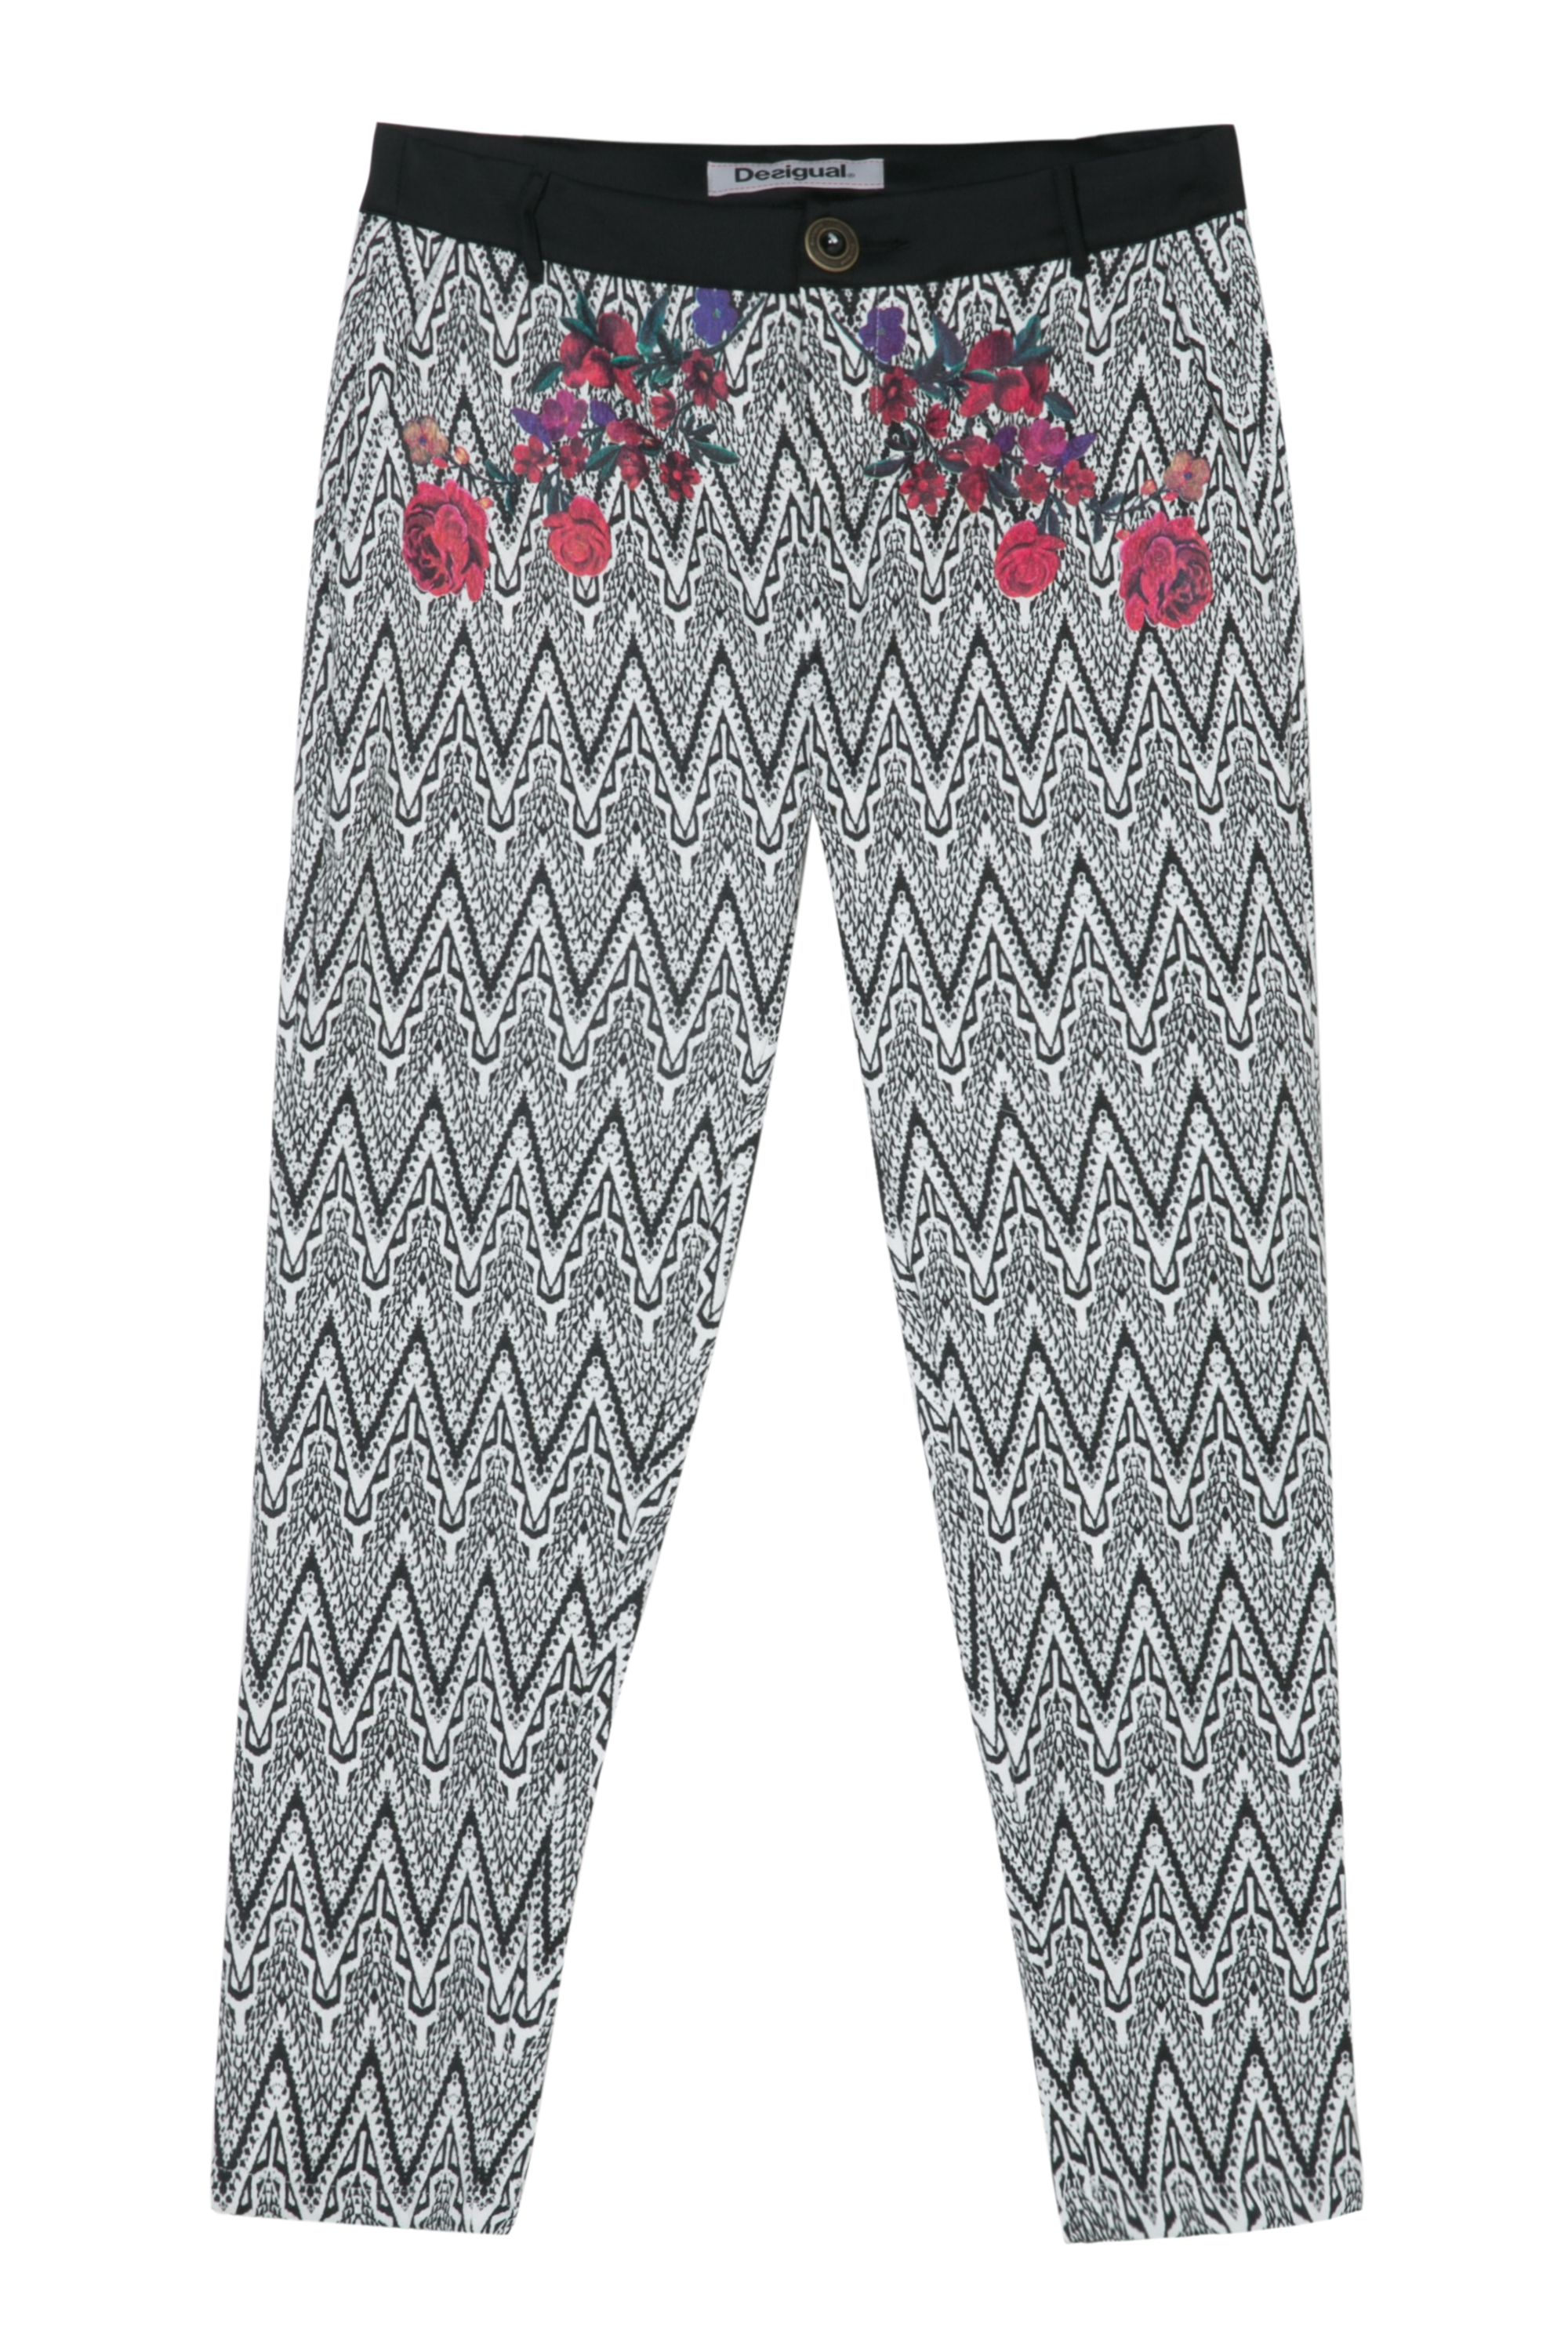 Desigual Trousers Aroa, Black